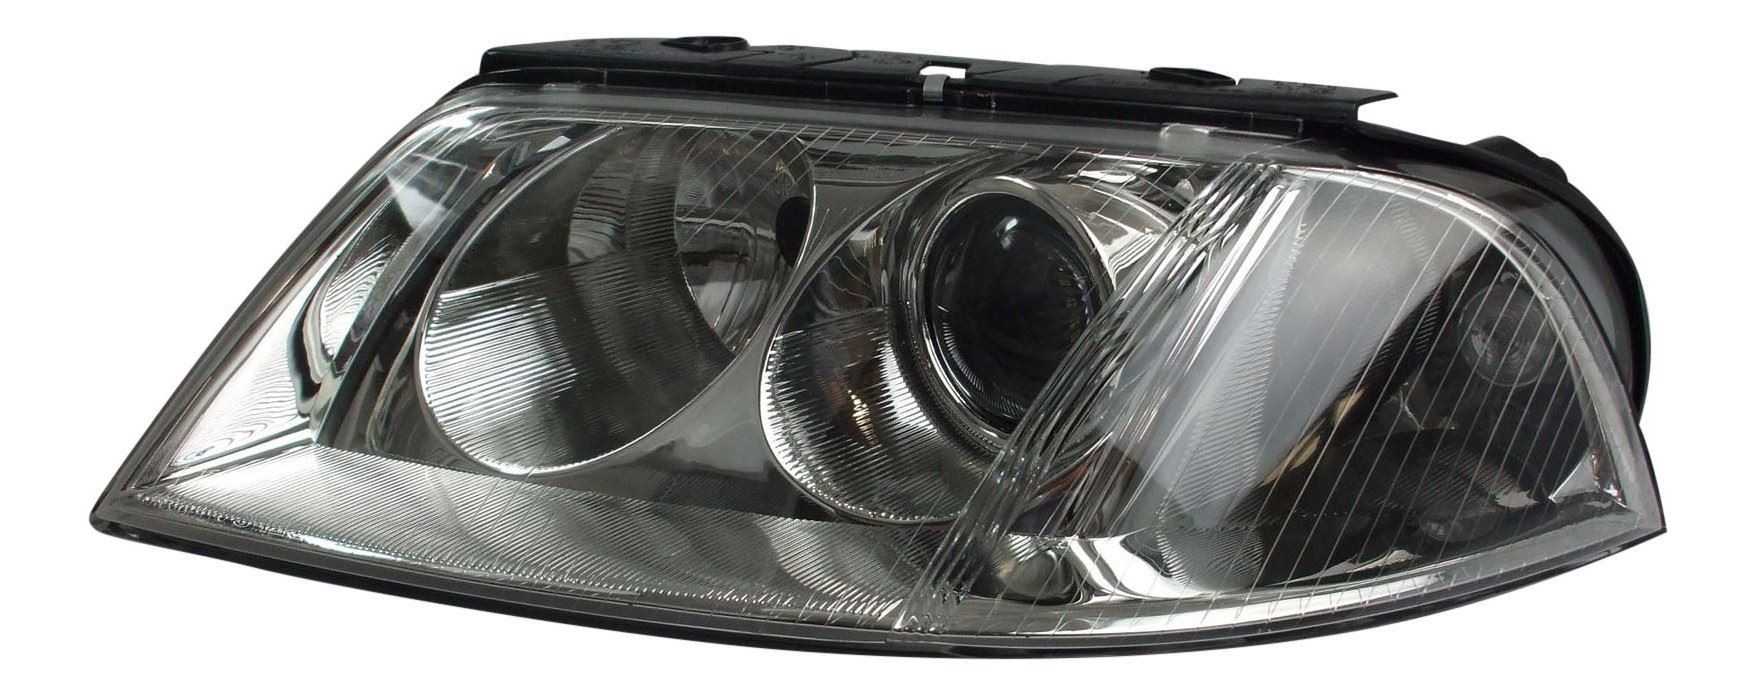 VW Passat Mk5 B5.5 Saloon 12/2000-9/2005 Headlight Headlamp Passenger Side N/S